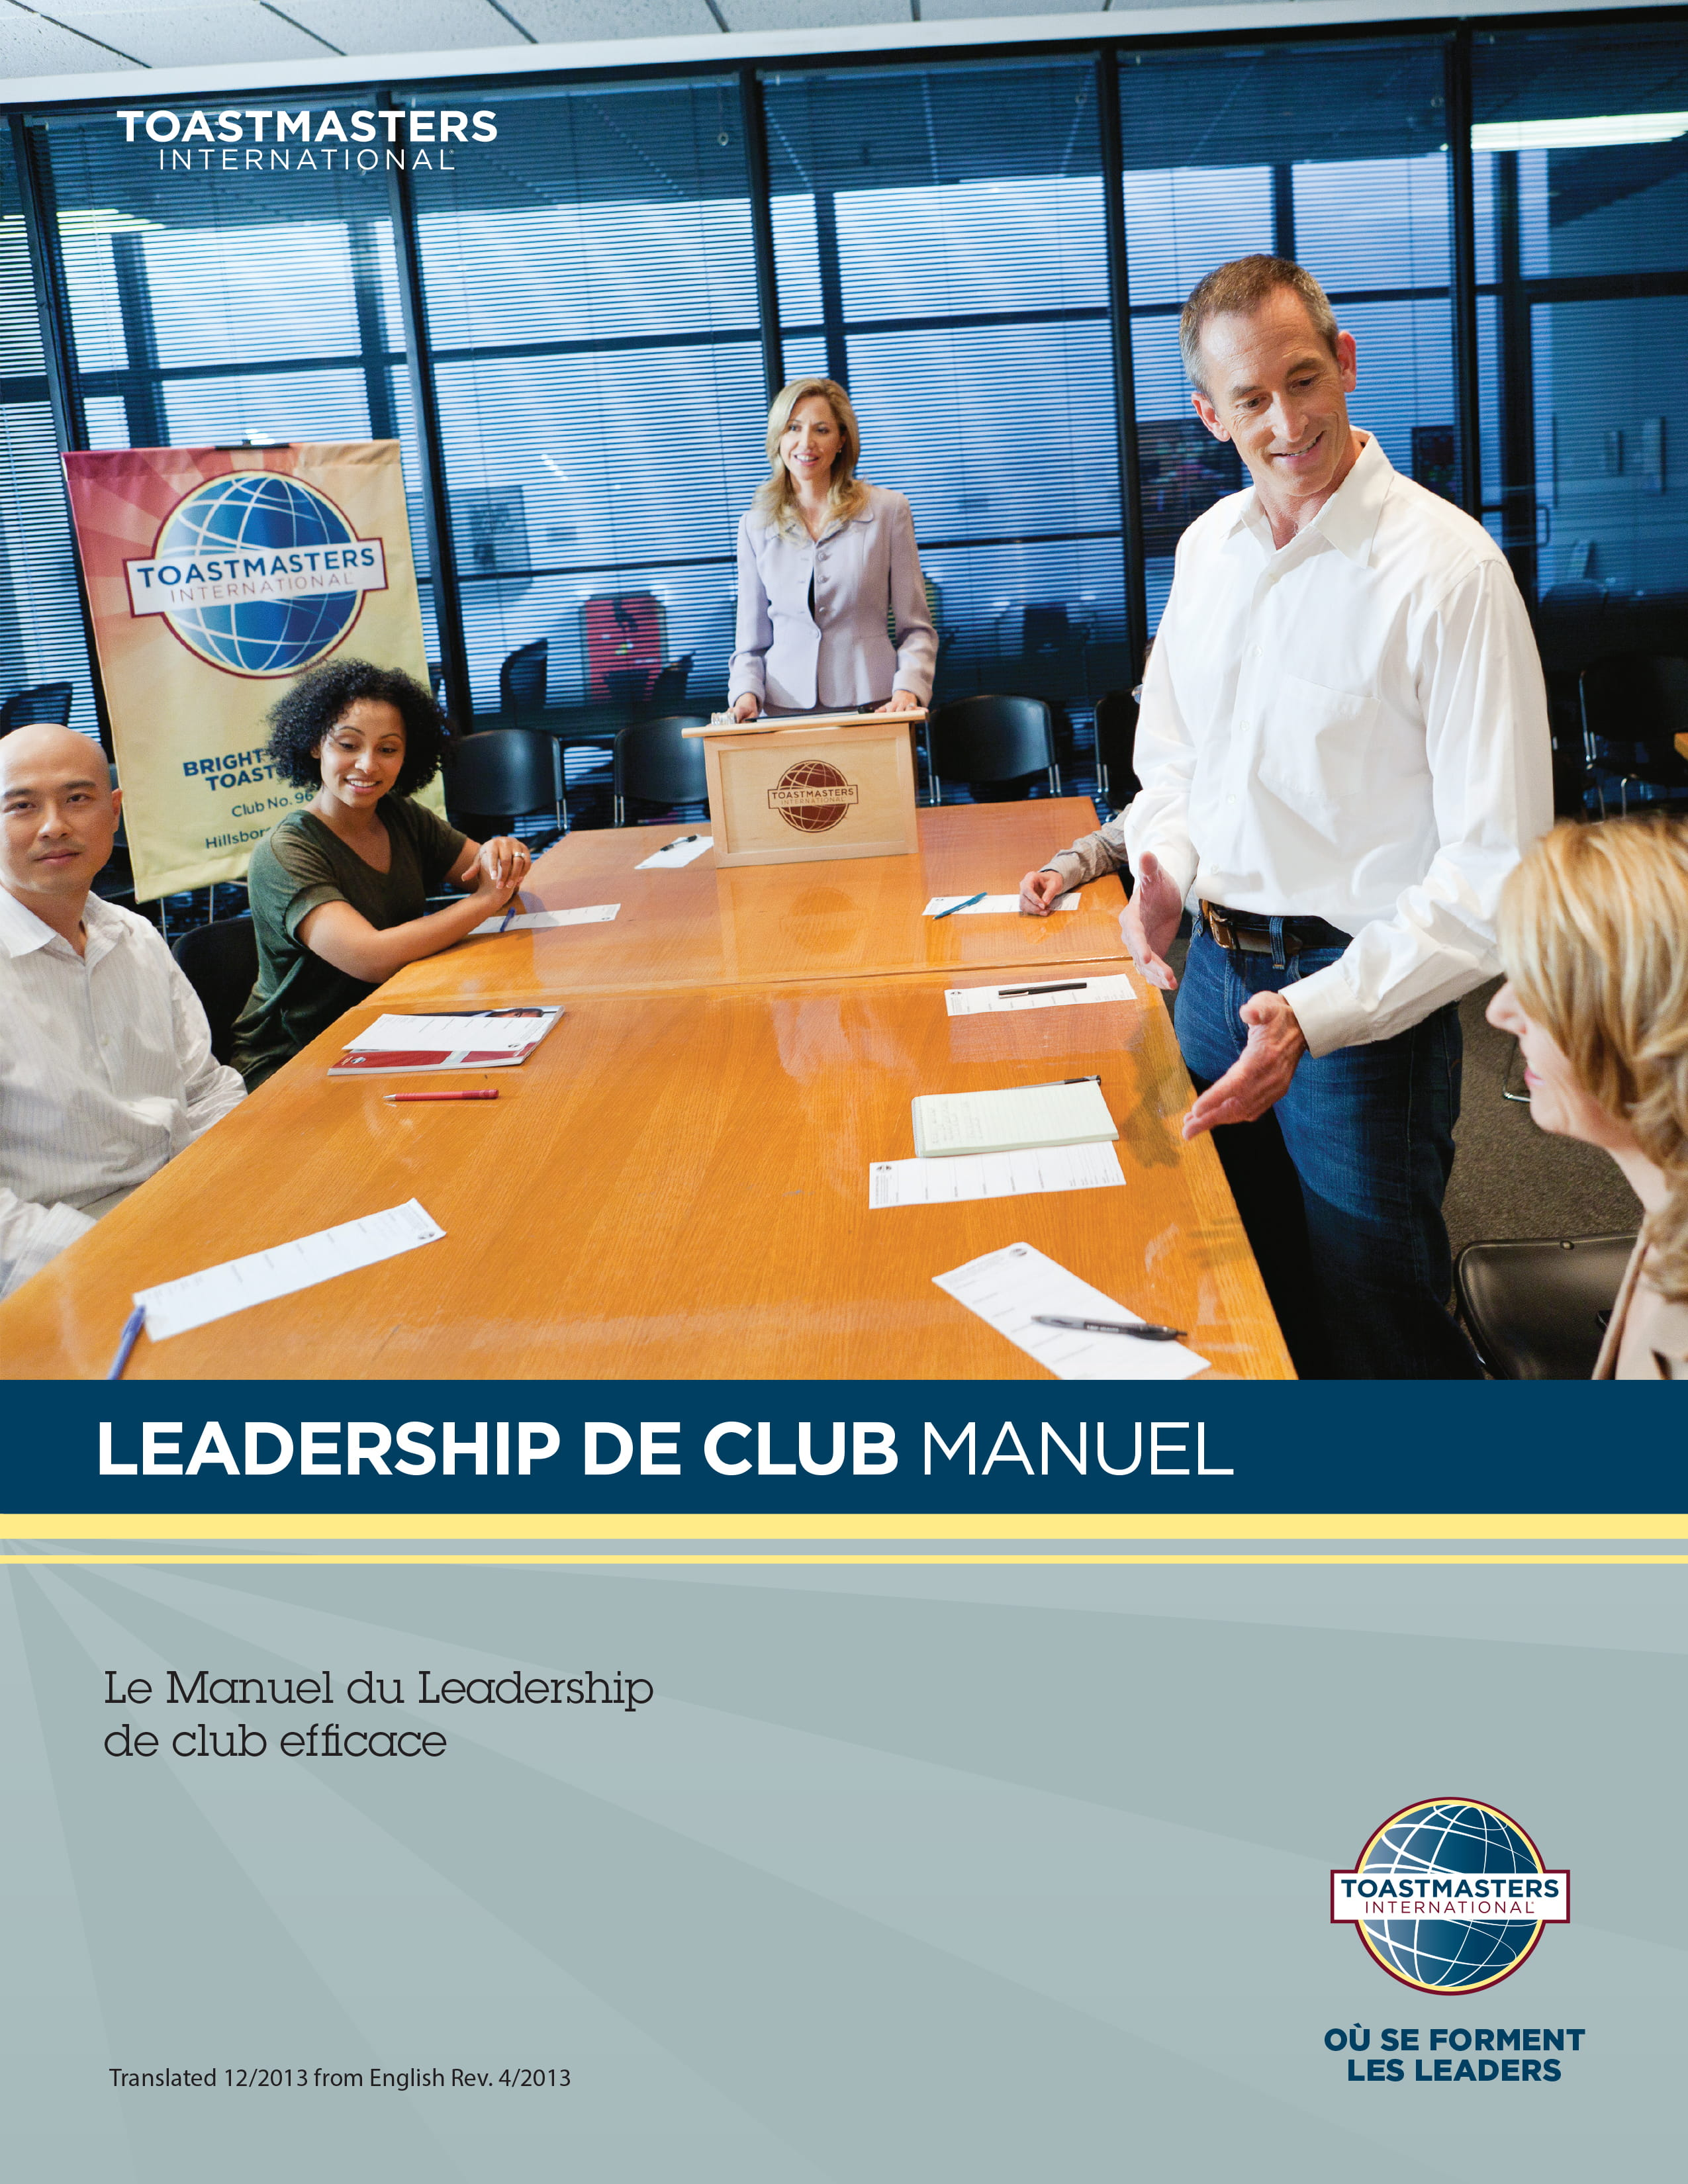 Club Leadership Handbook (French)